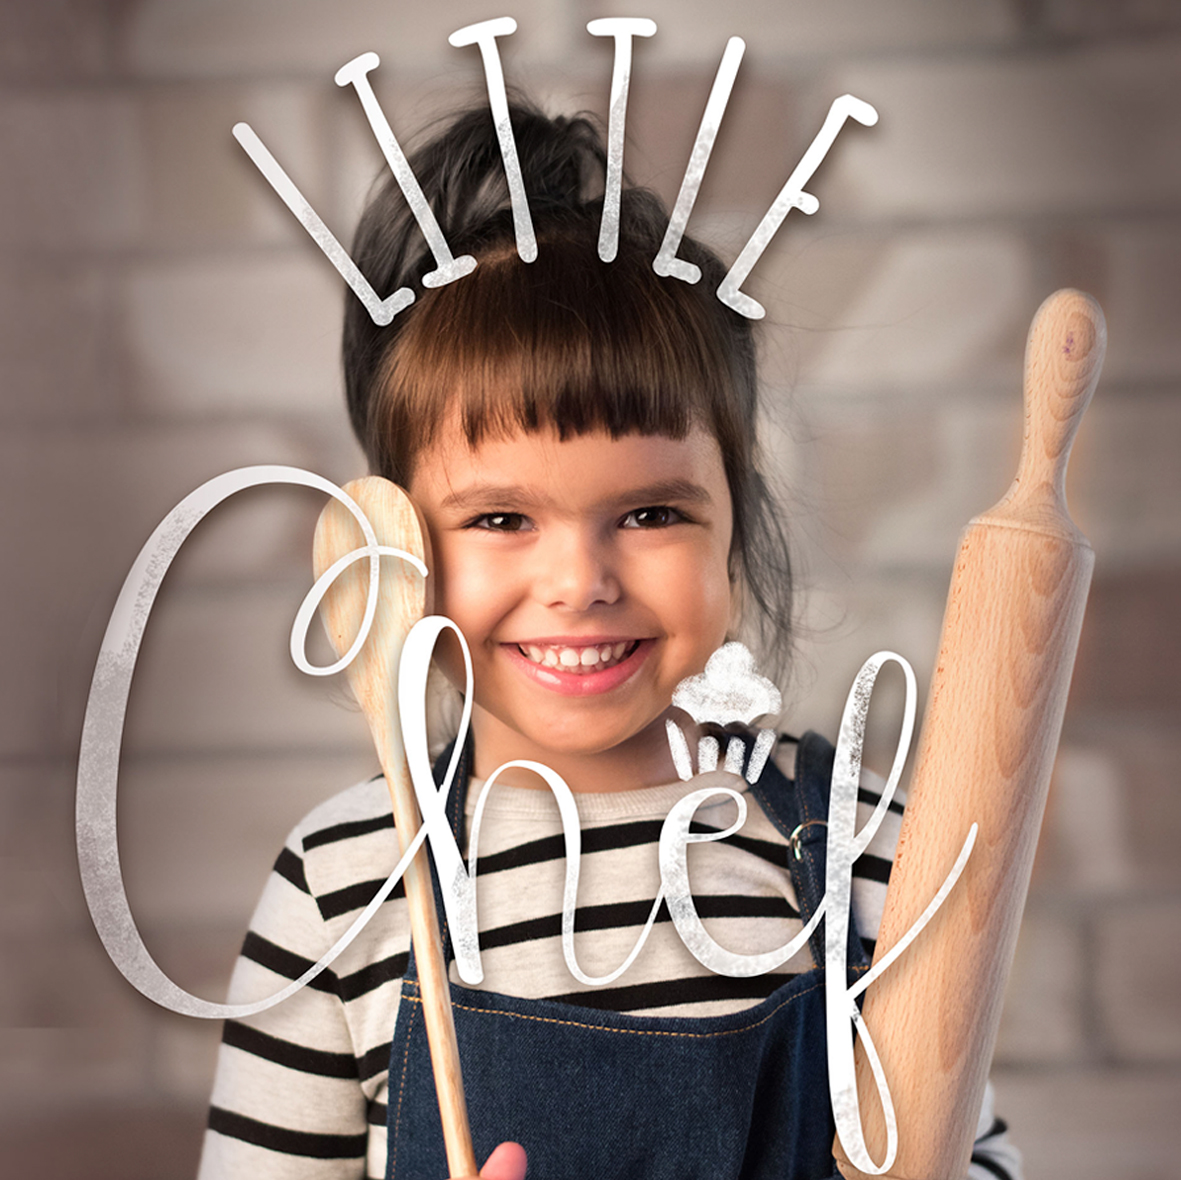 Little Chef: come cook with us!